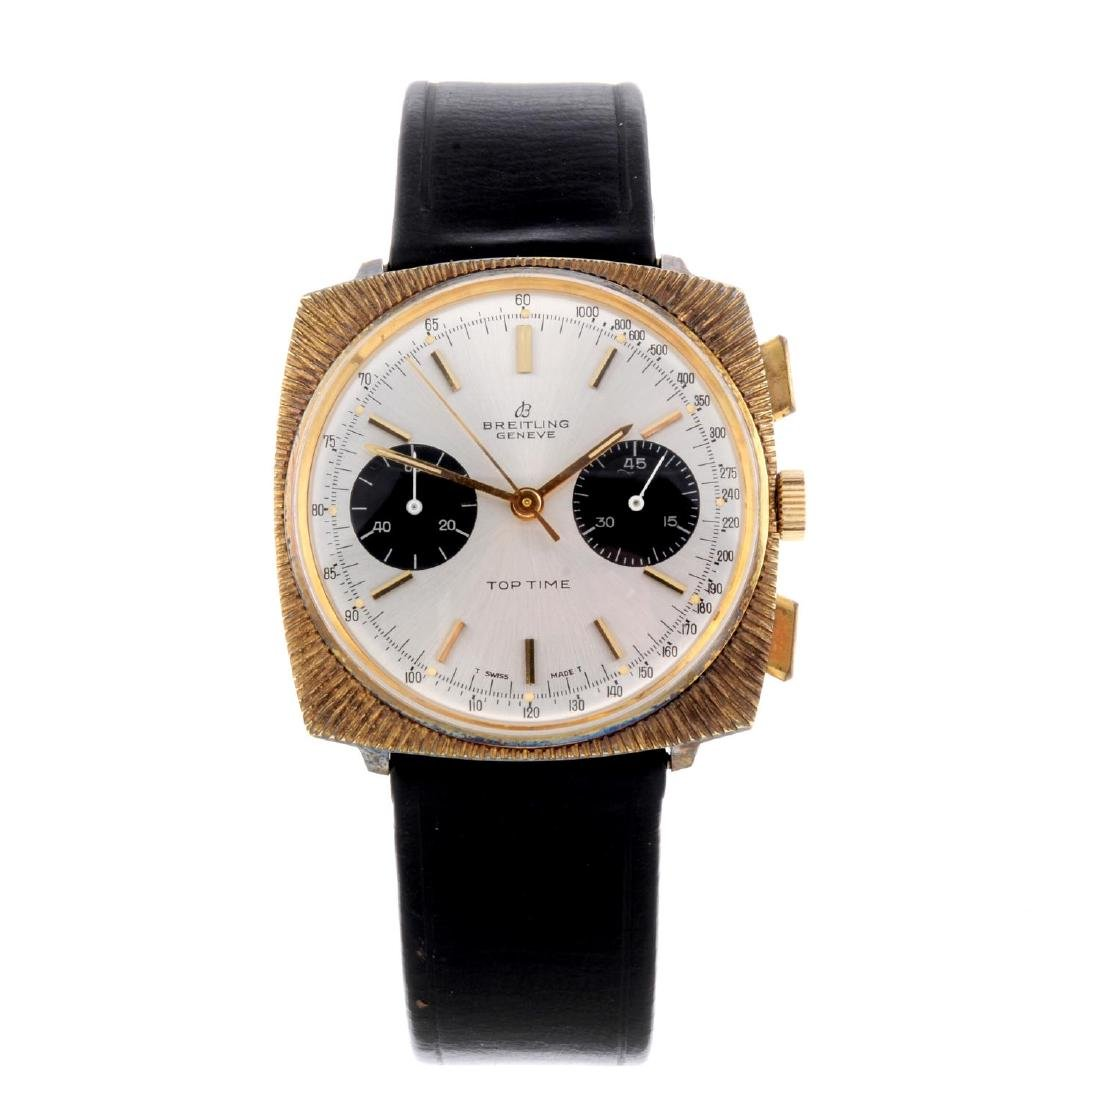 BREITLING - a gentleman's Top Time chronograph wrist